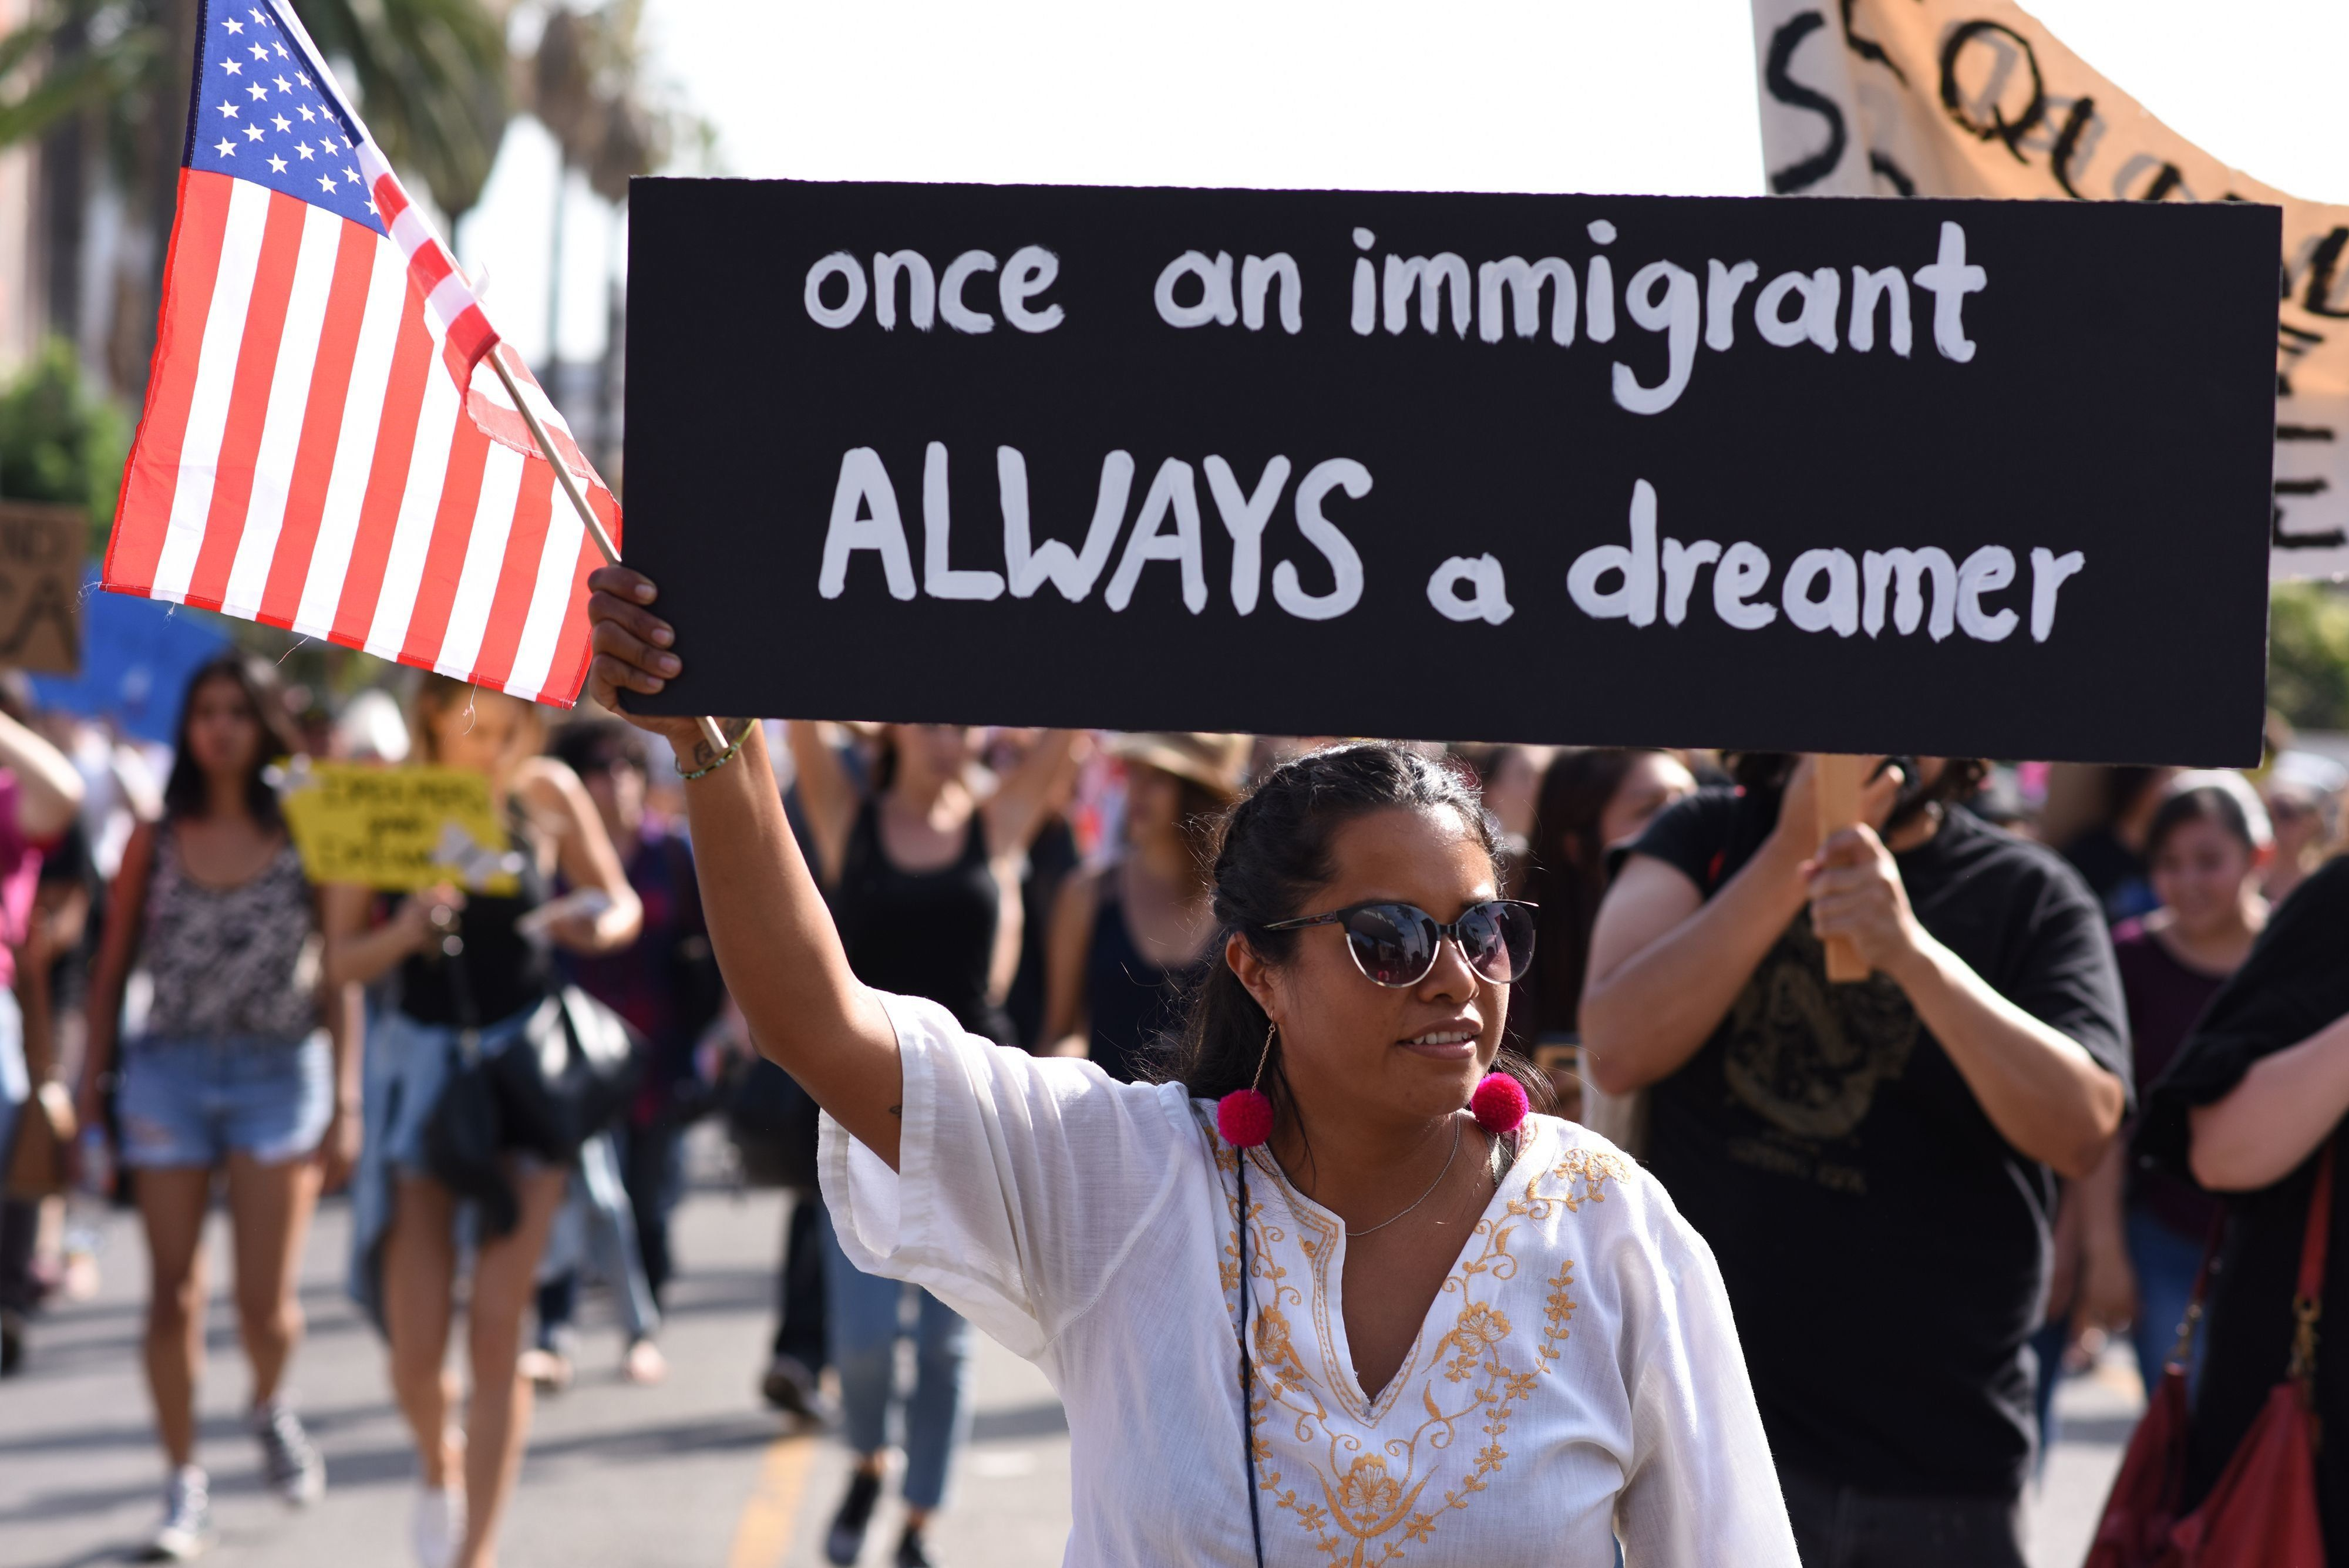 People protest efforts by the Trump administration to phase out DACA (Deferred Action for Childhood Arrivals) which provides protection from deportation for young immigrants brought into the US illegally by their parents, September 10, 2017 in Los Angeles, California. / AFP PHOTO / Robyn Beck        (Photo credit should read ROBYN BECK/AFP/Getty Images)